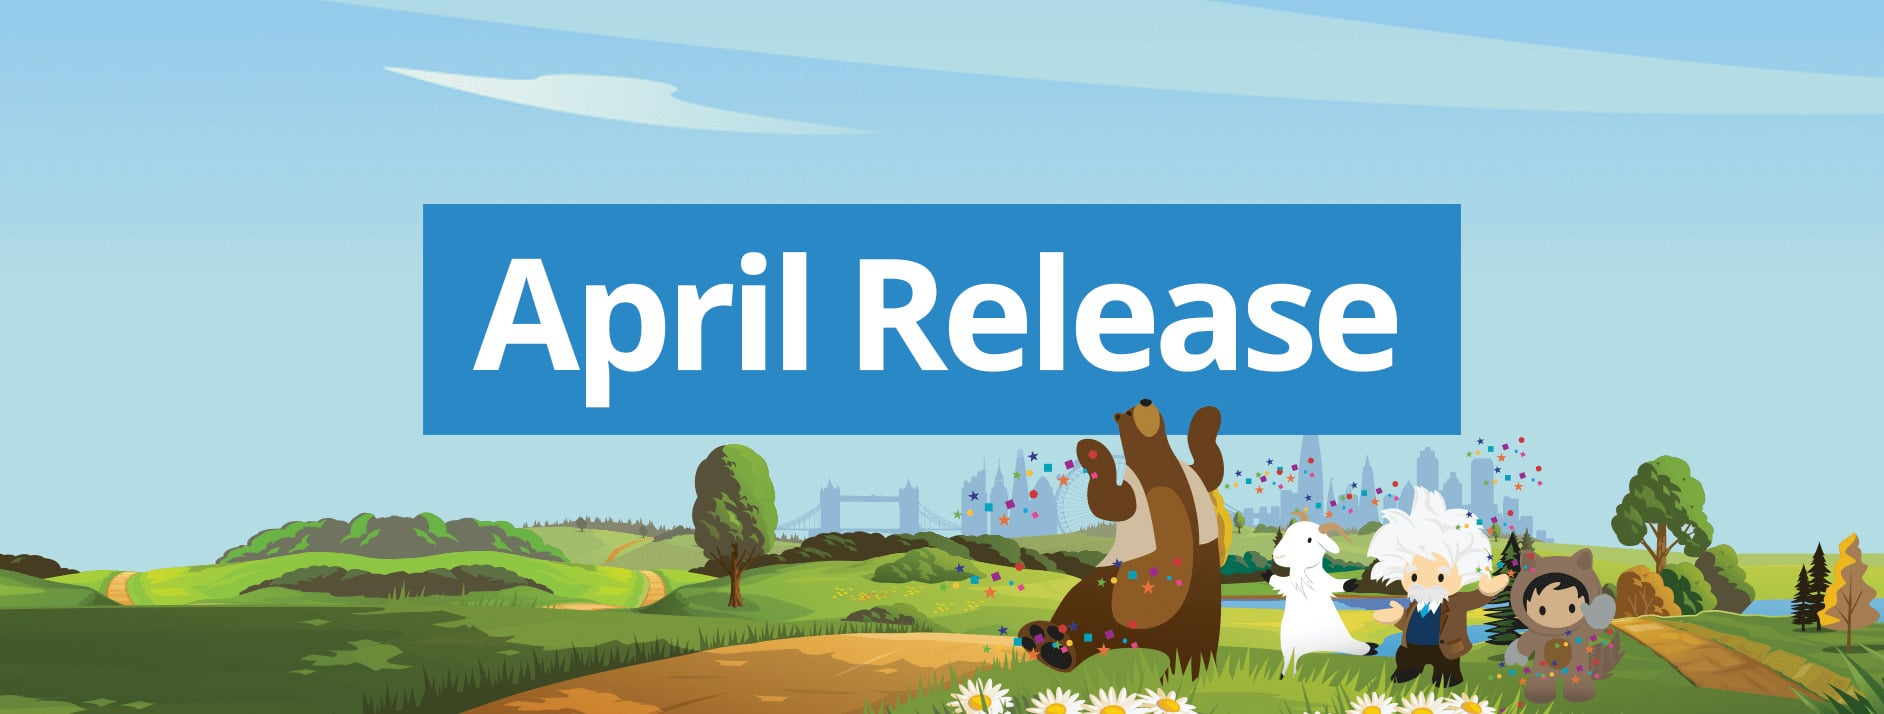 Release Nétive VMS april